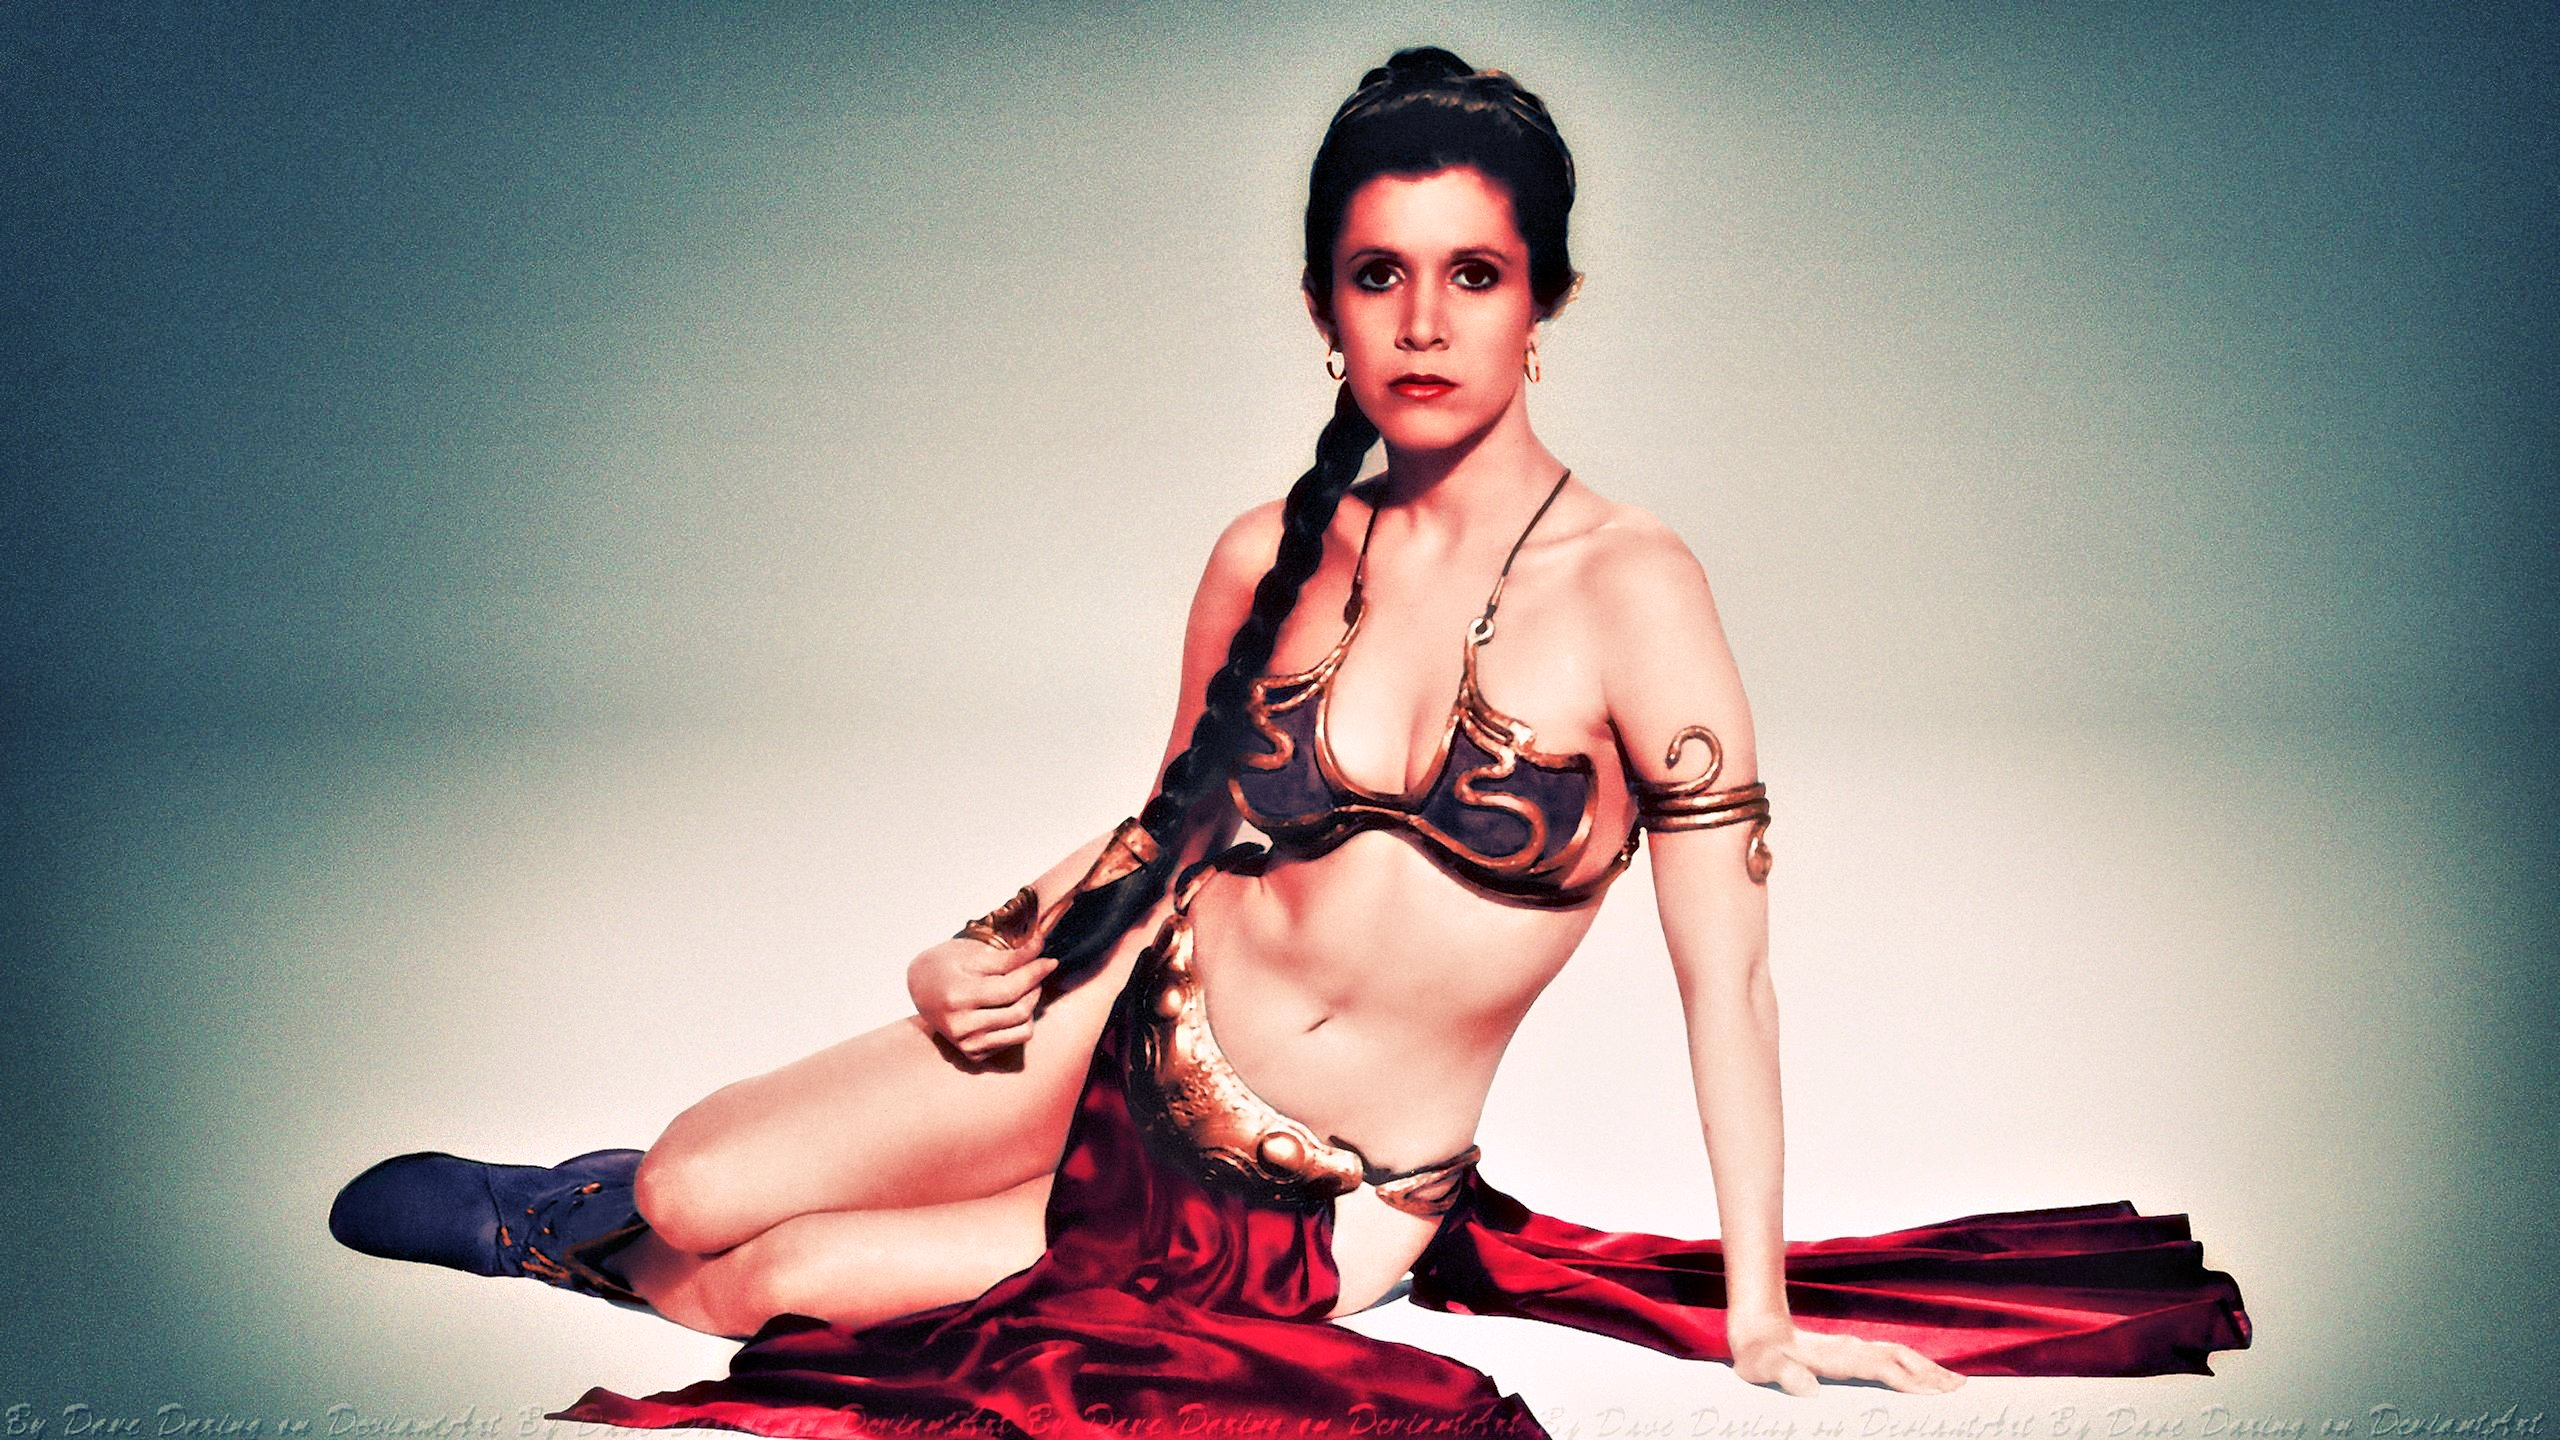 Carrie Fisher Slave Girl Princess VII Colourized by Dave-Daring